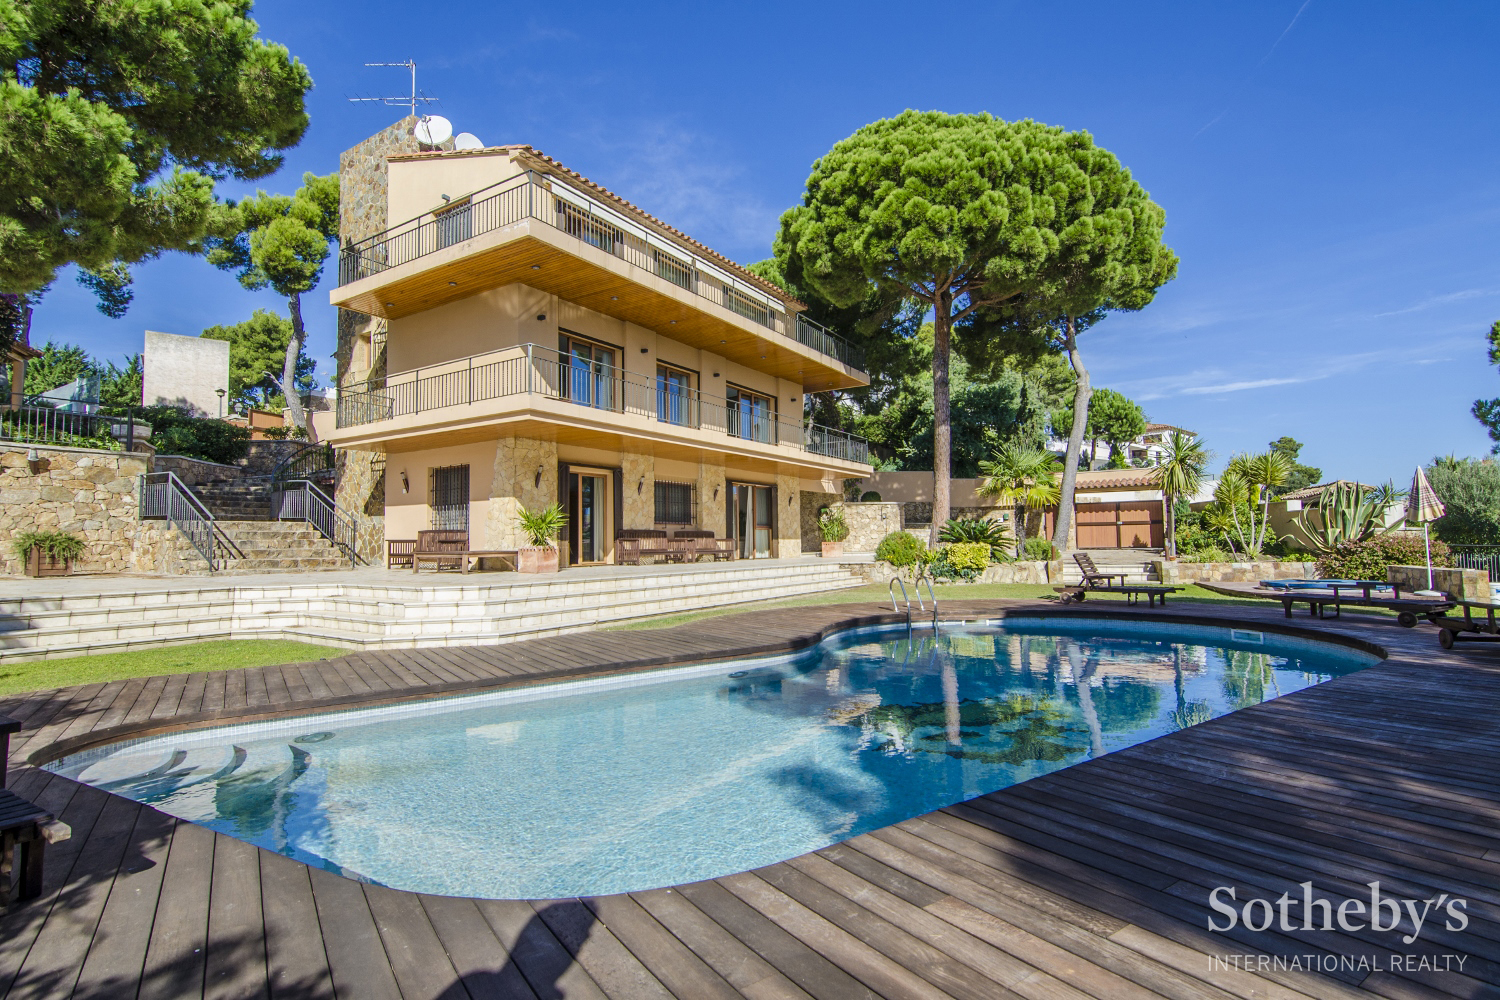 独户住宅 为 销售 在 Beautiful villa with magnificent sea views in prestigious urbanization Torrevalentina, Barcelona 17252 西班牙